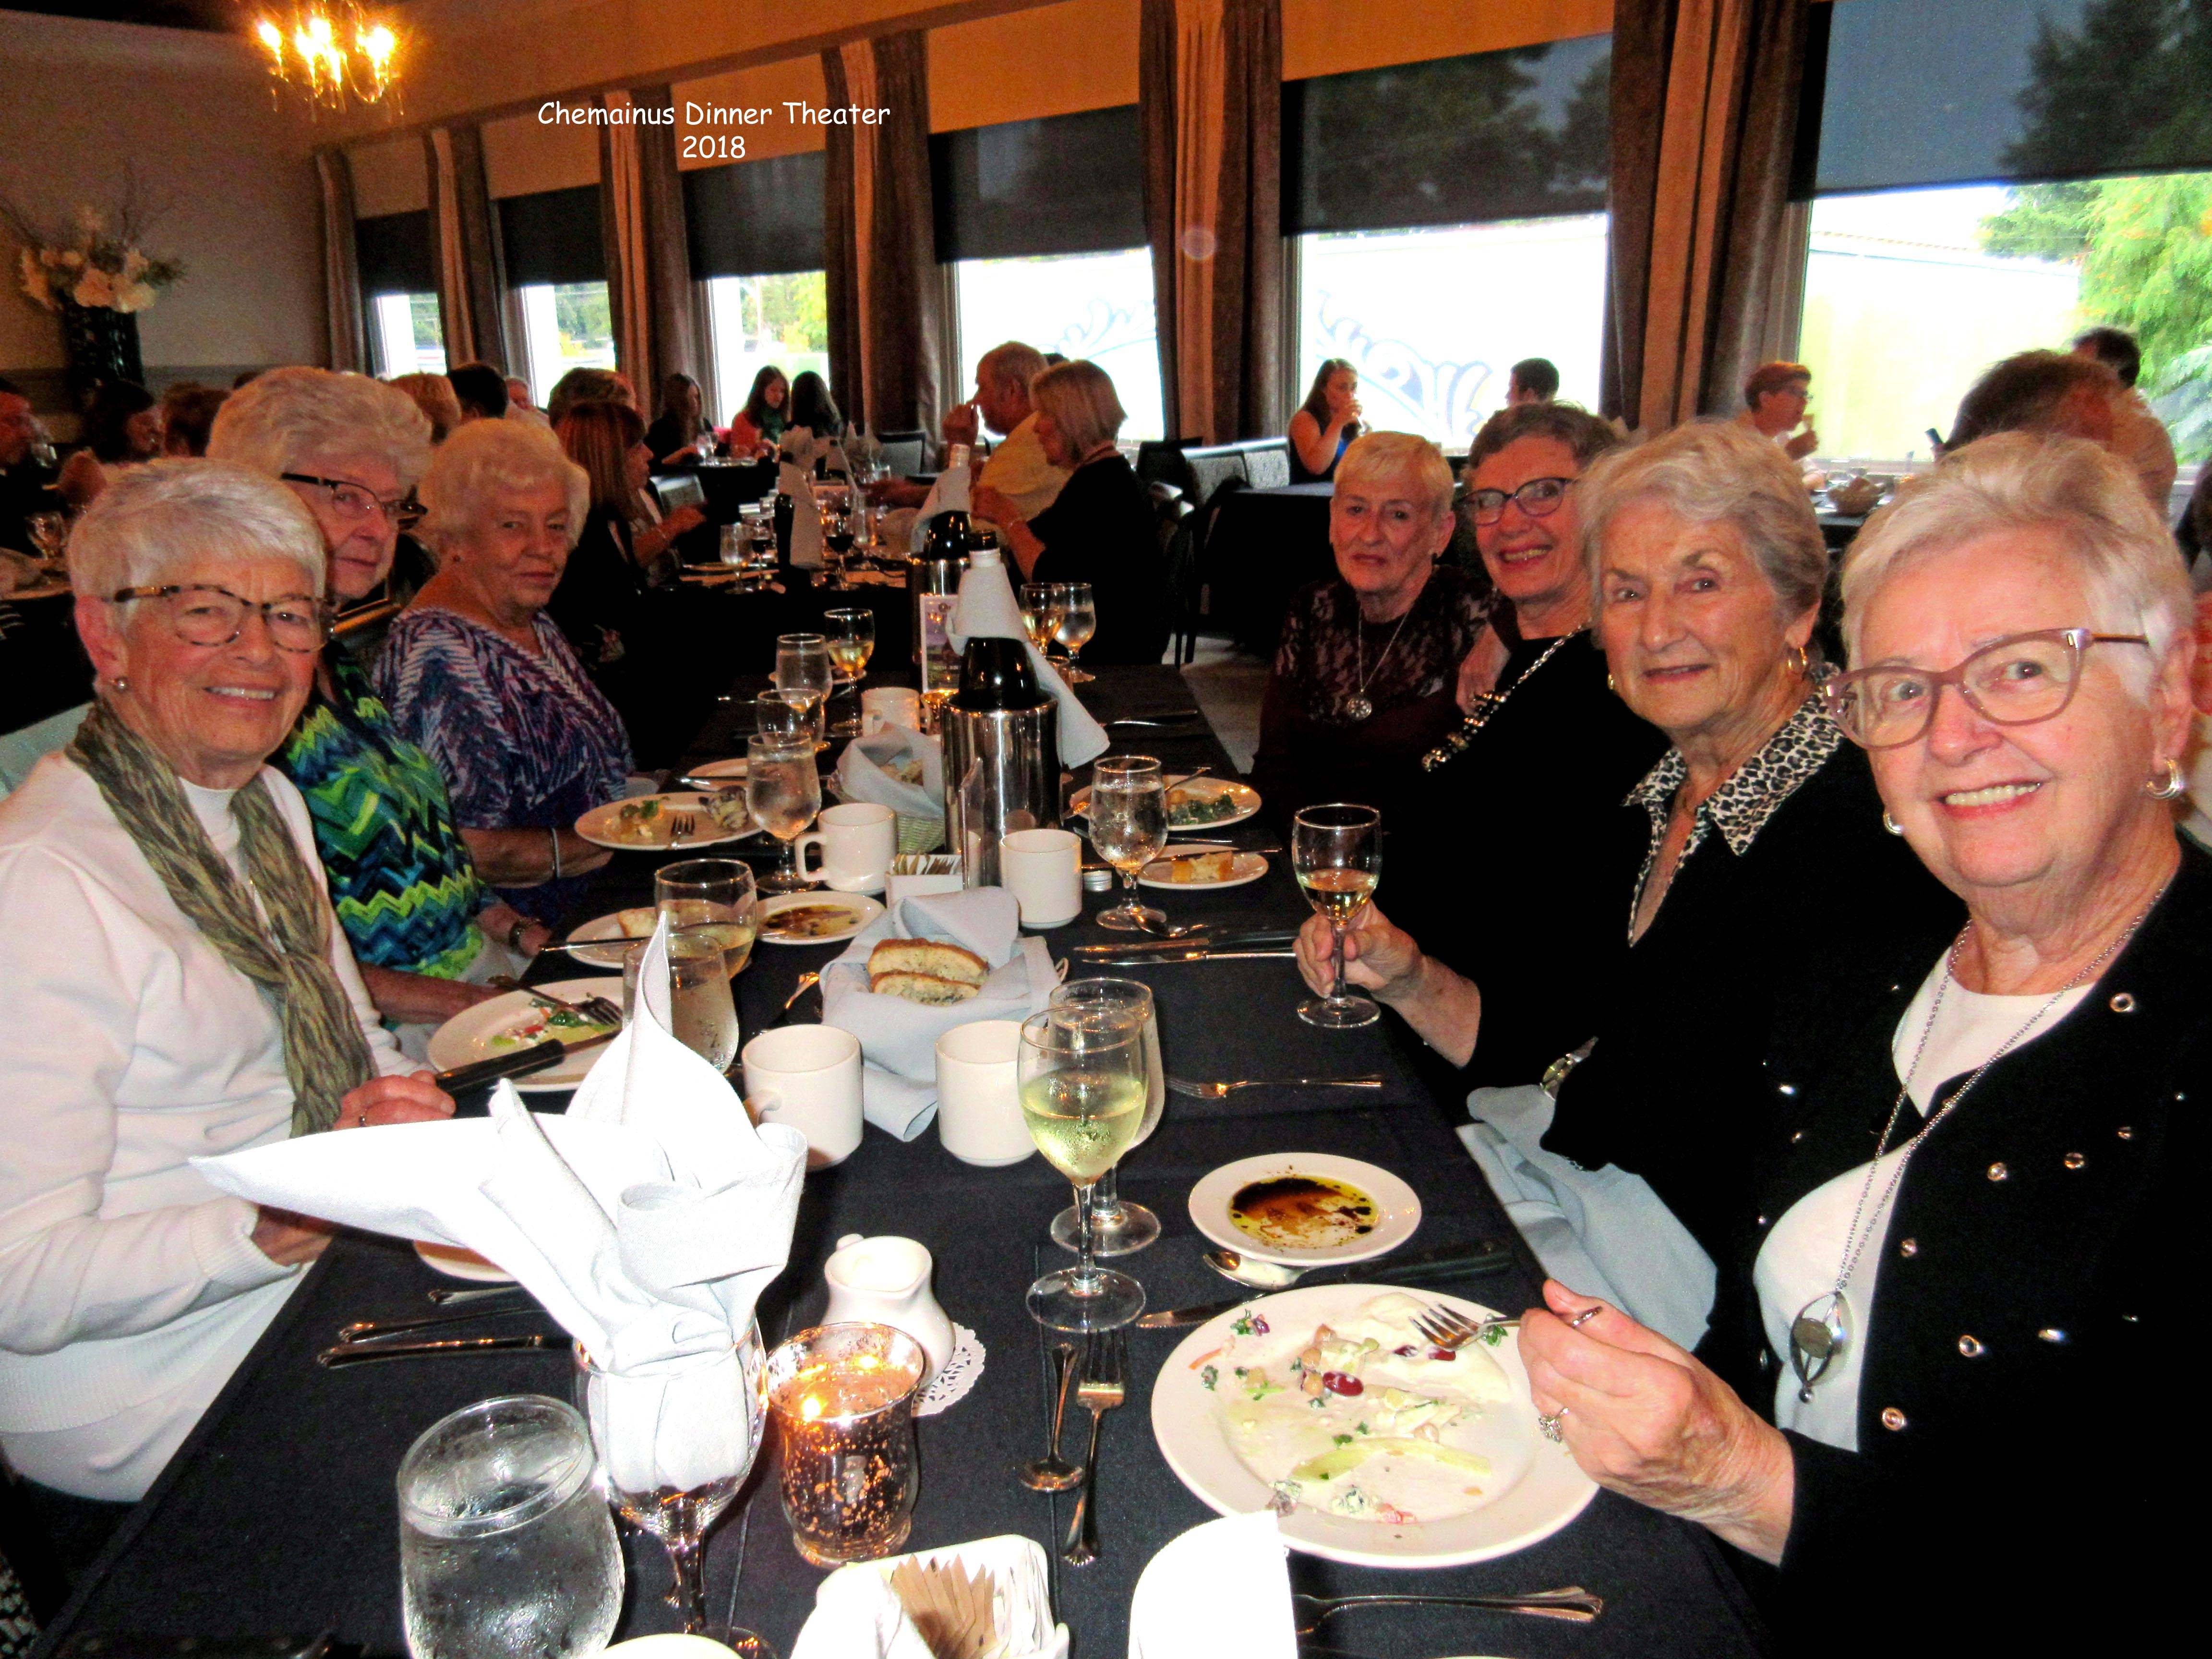 Table 3 Chemainus Theater